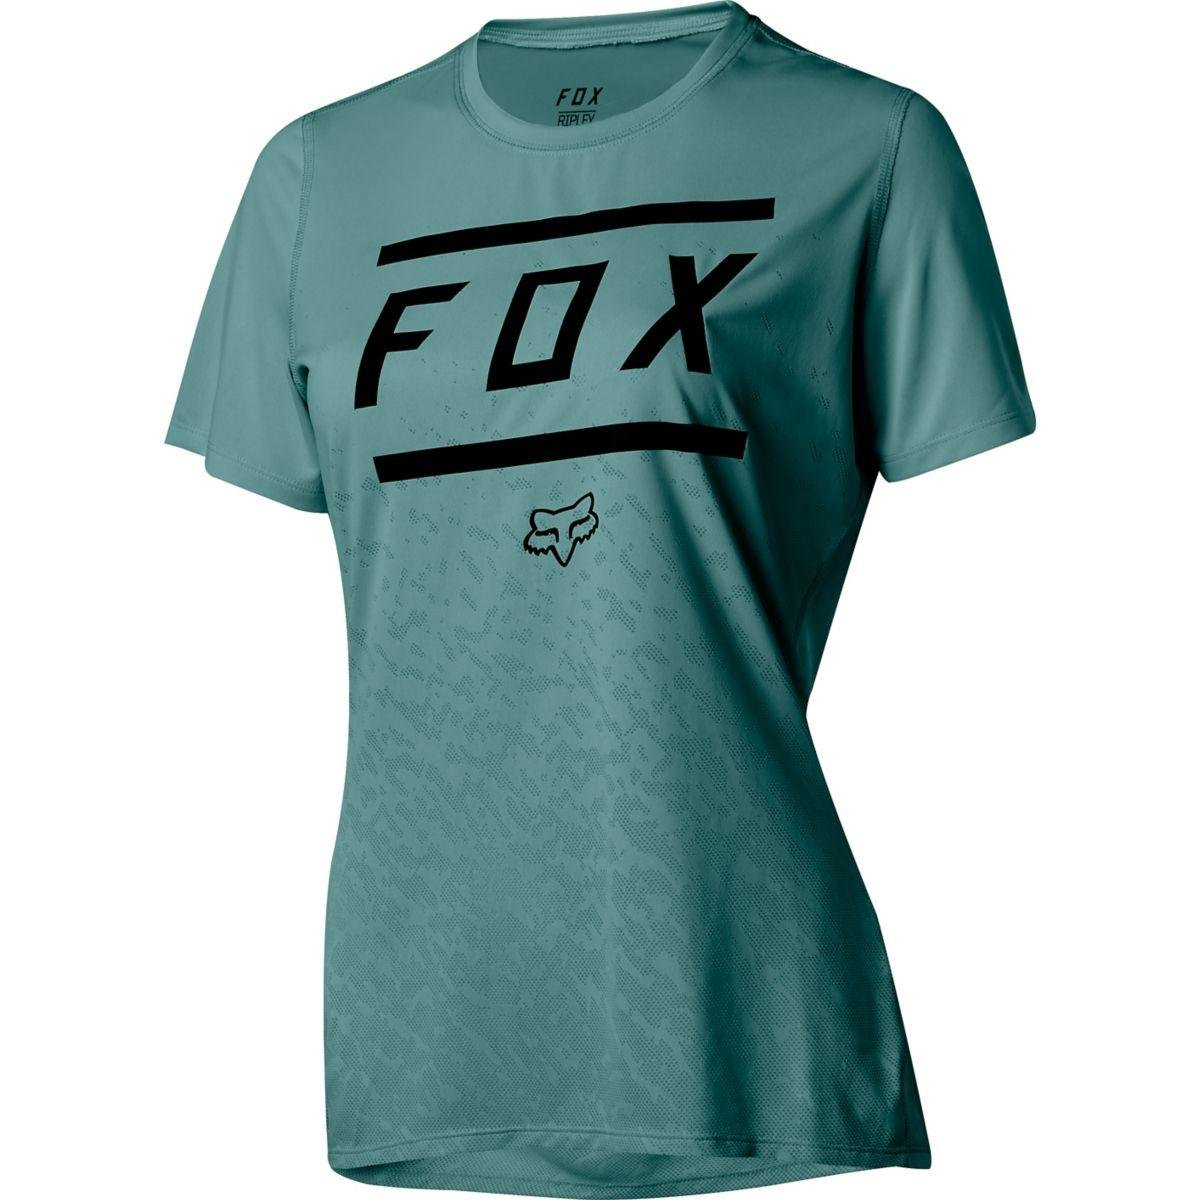 a6e43db3f Amazon.com   Fox Racing Ripley Short-Sleeve Jersey - Women s Bars Pine